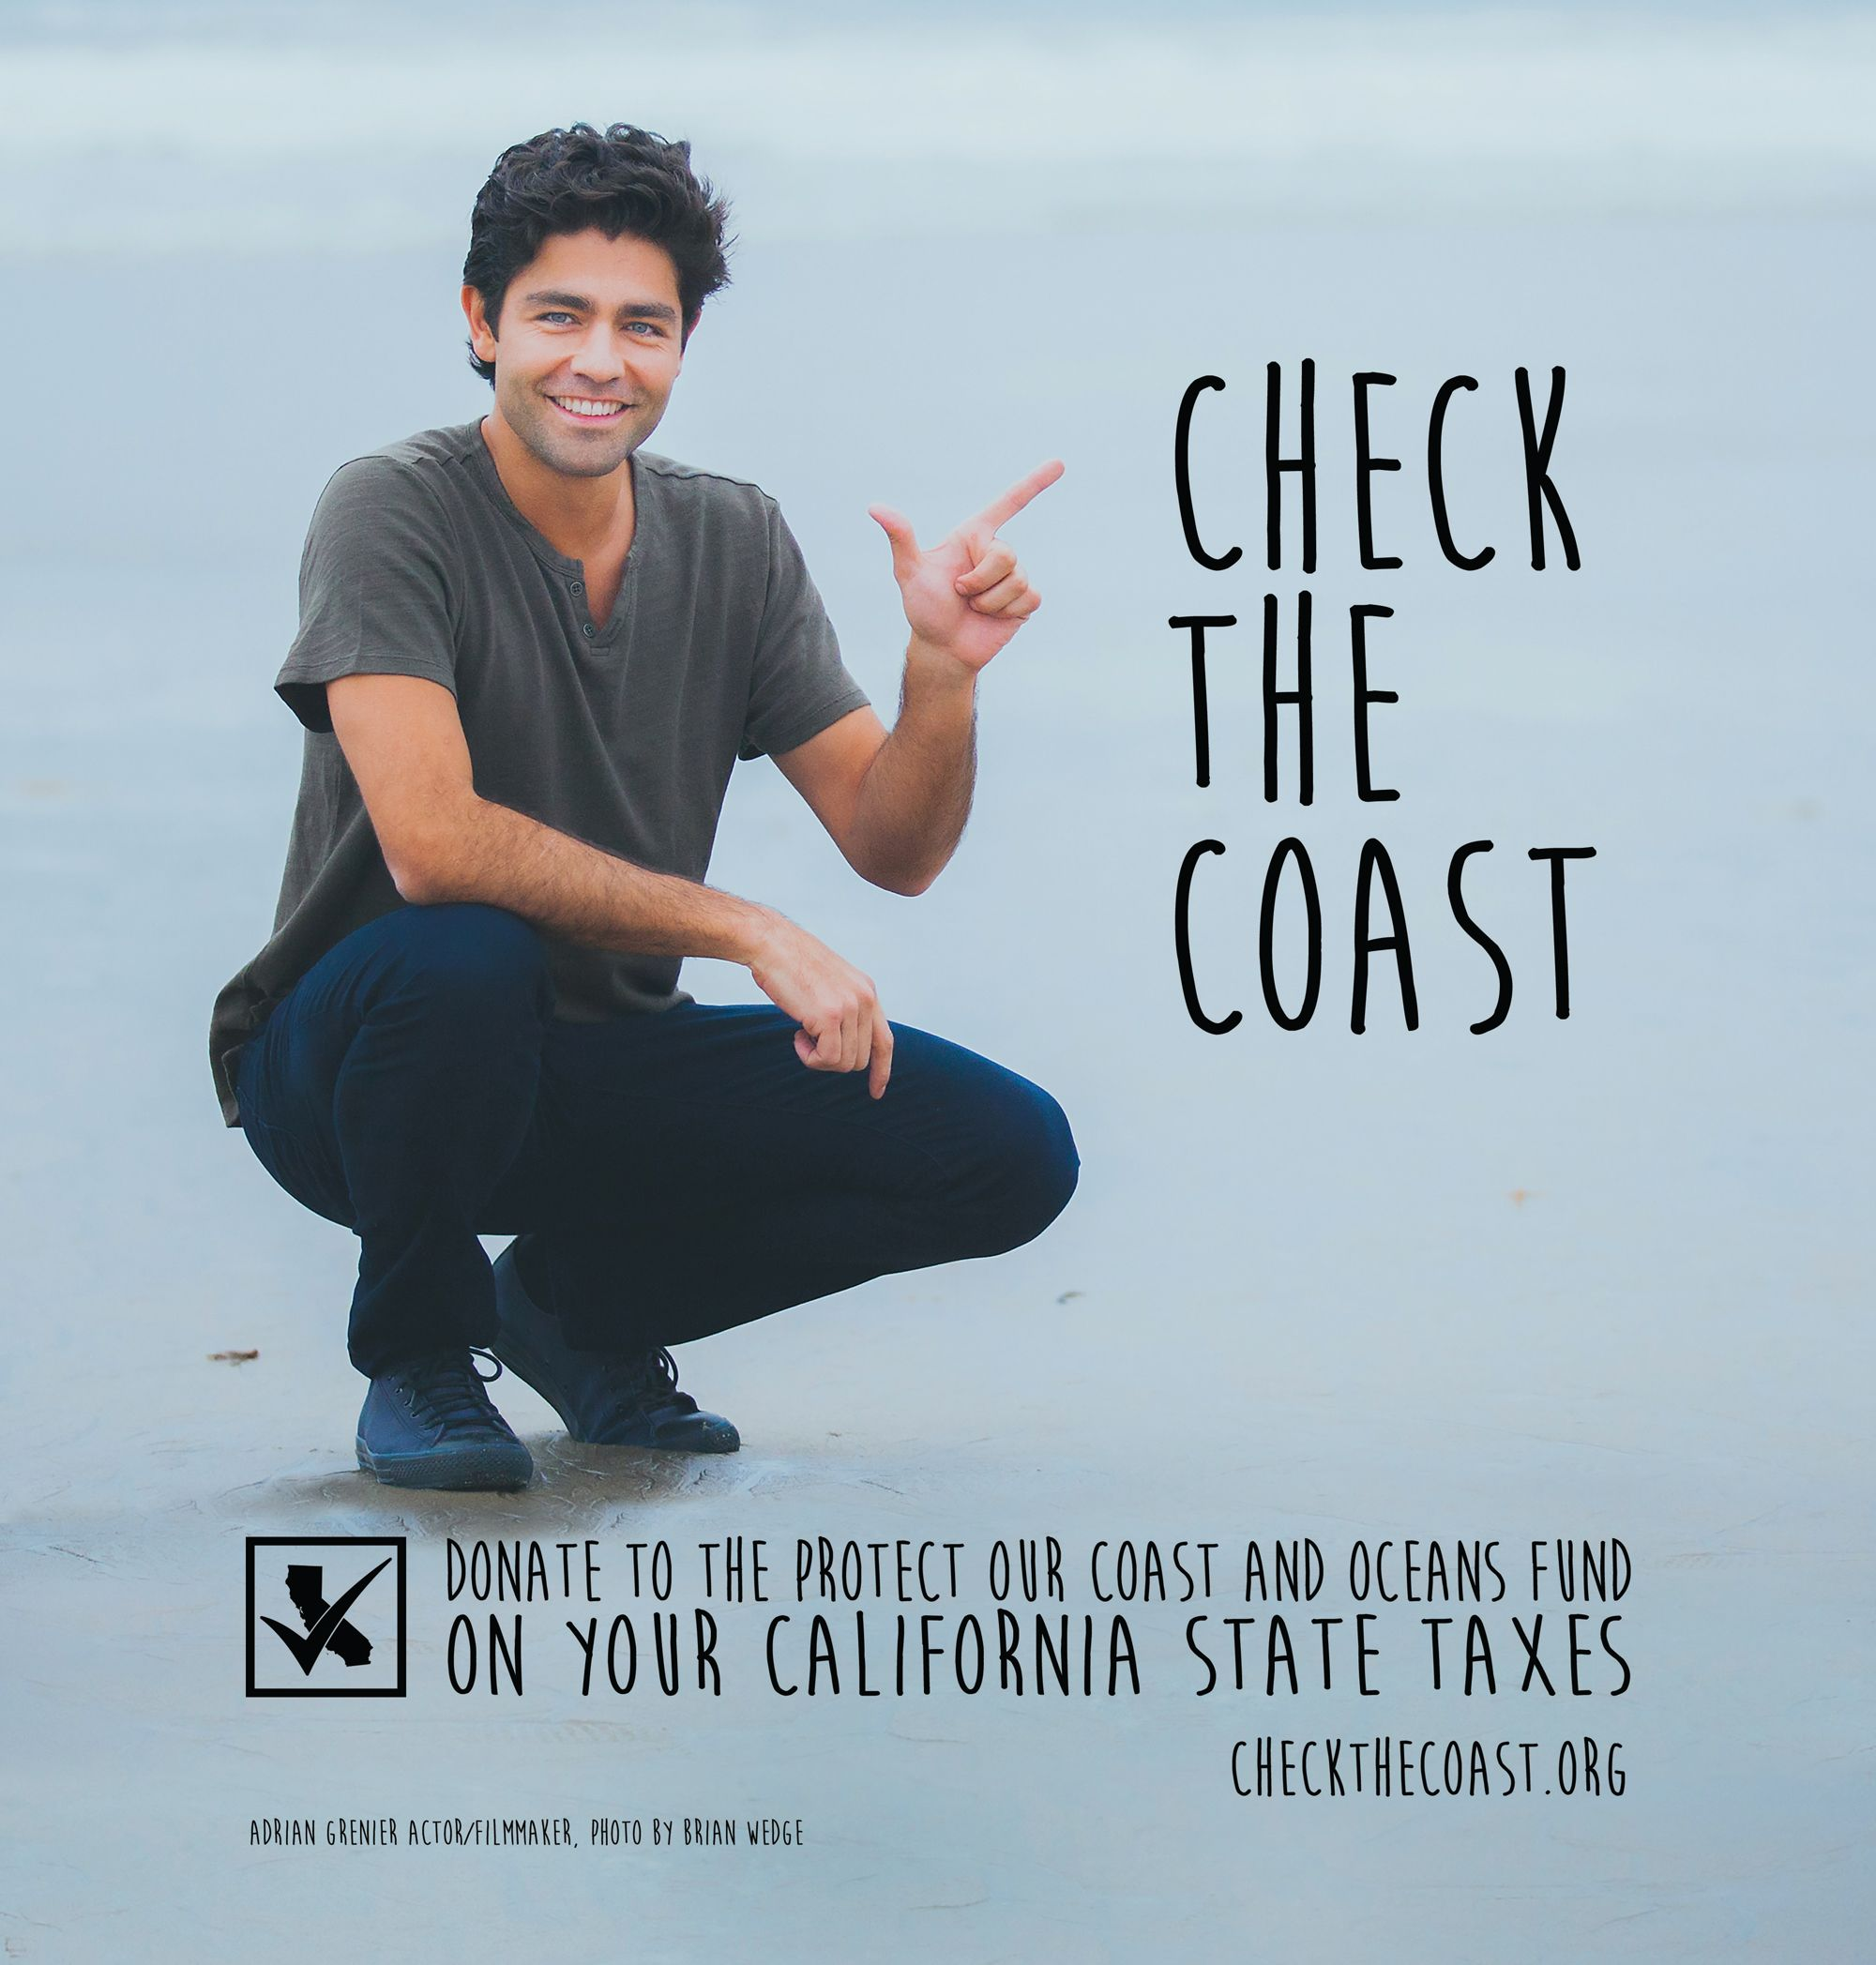 #CheckTheCoast on your 2014 tax form and help protect what we love: checkthecoast.org